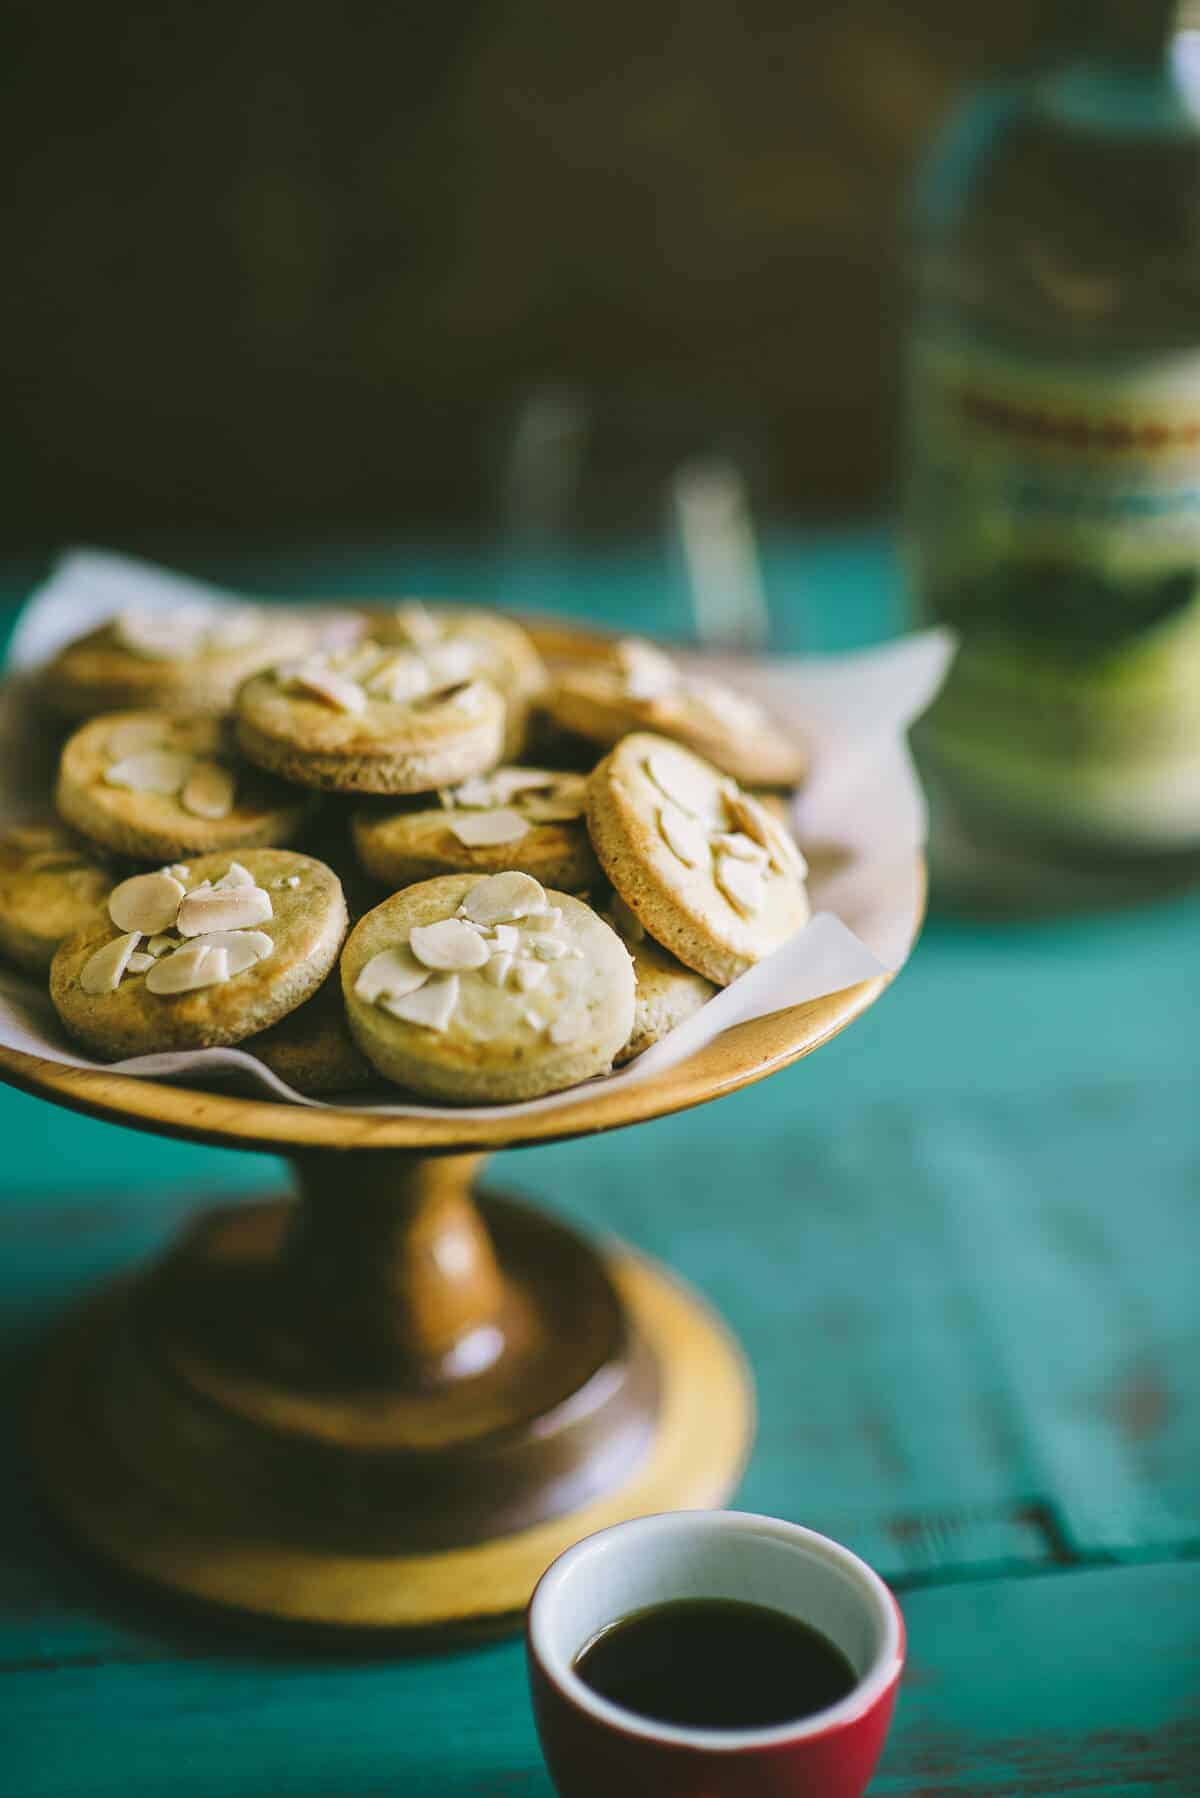 biscuits made with ouzo served on a cake stand